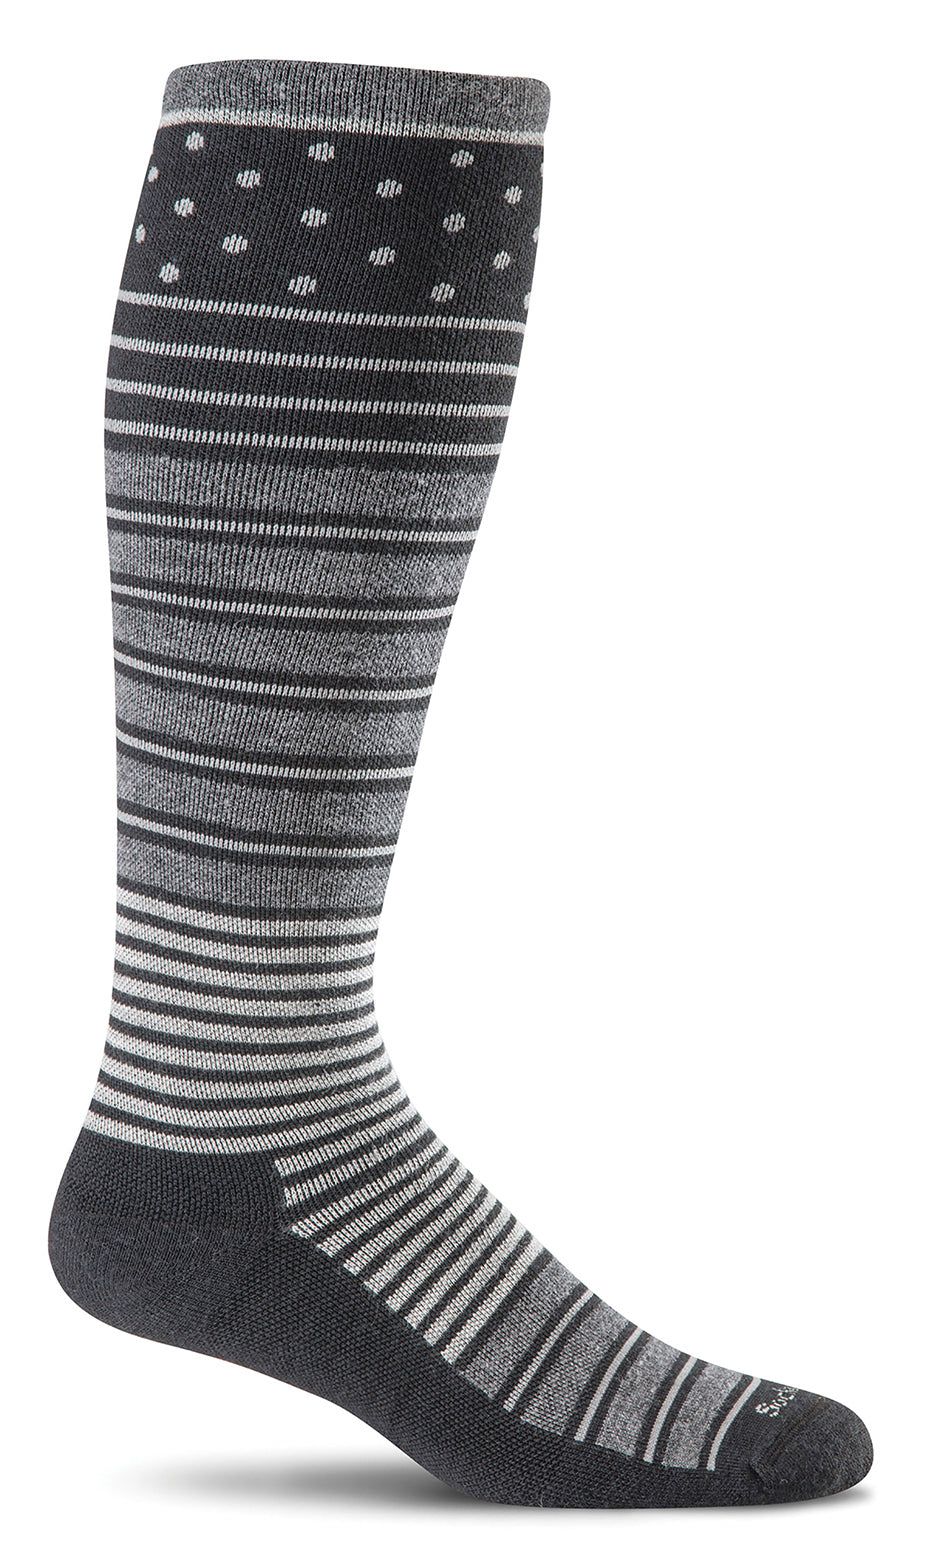 Twister - Black Firm Compression